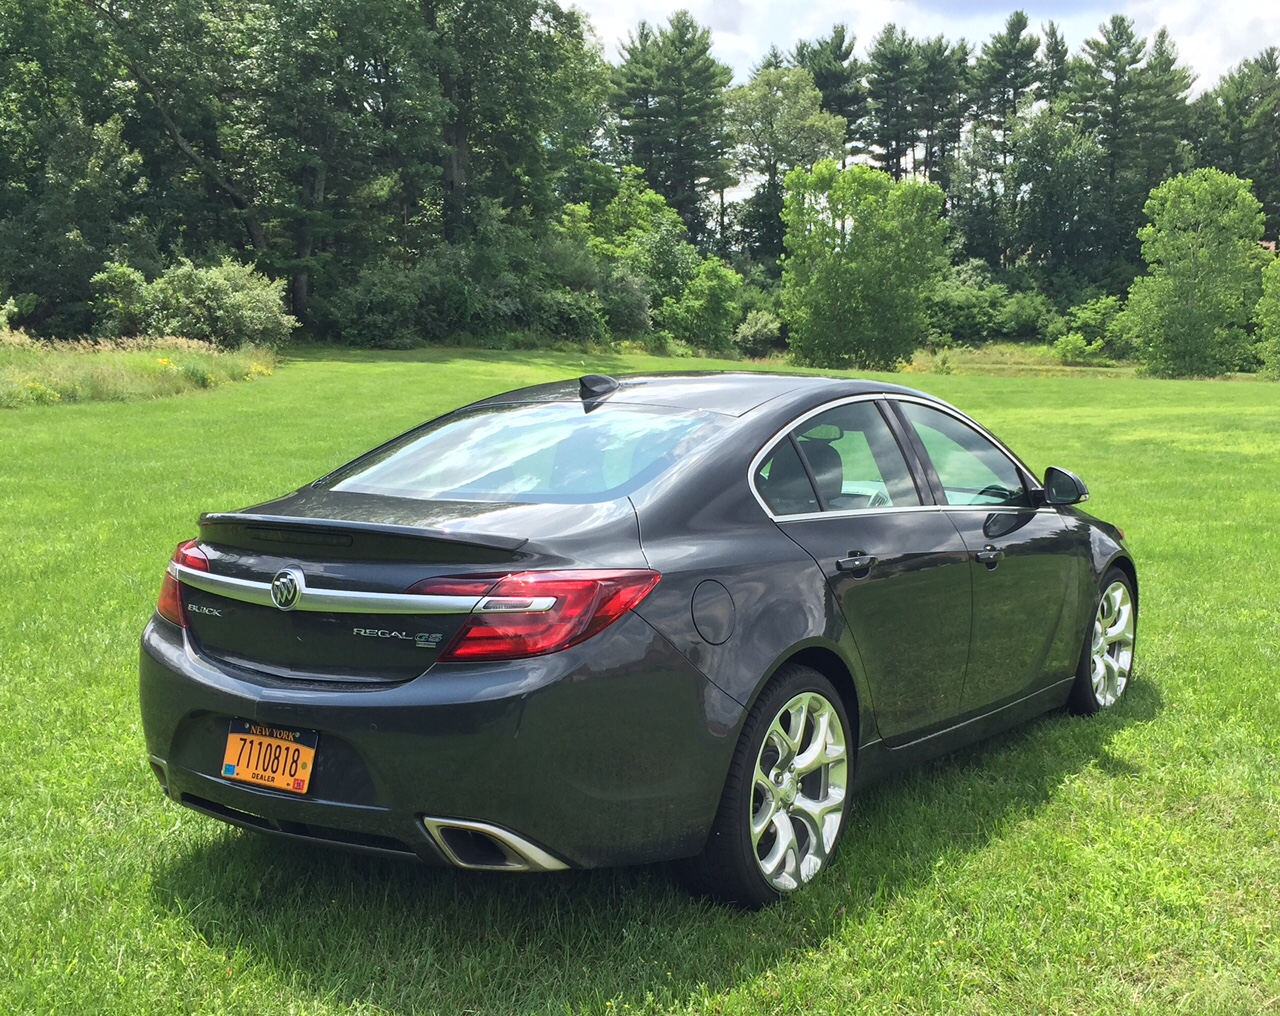 2015 Buick Regal GS Rear